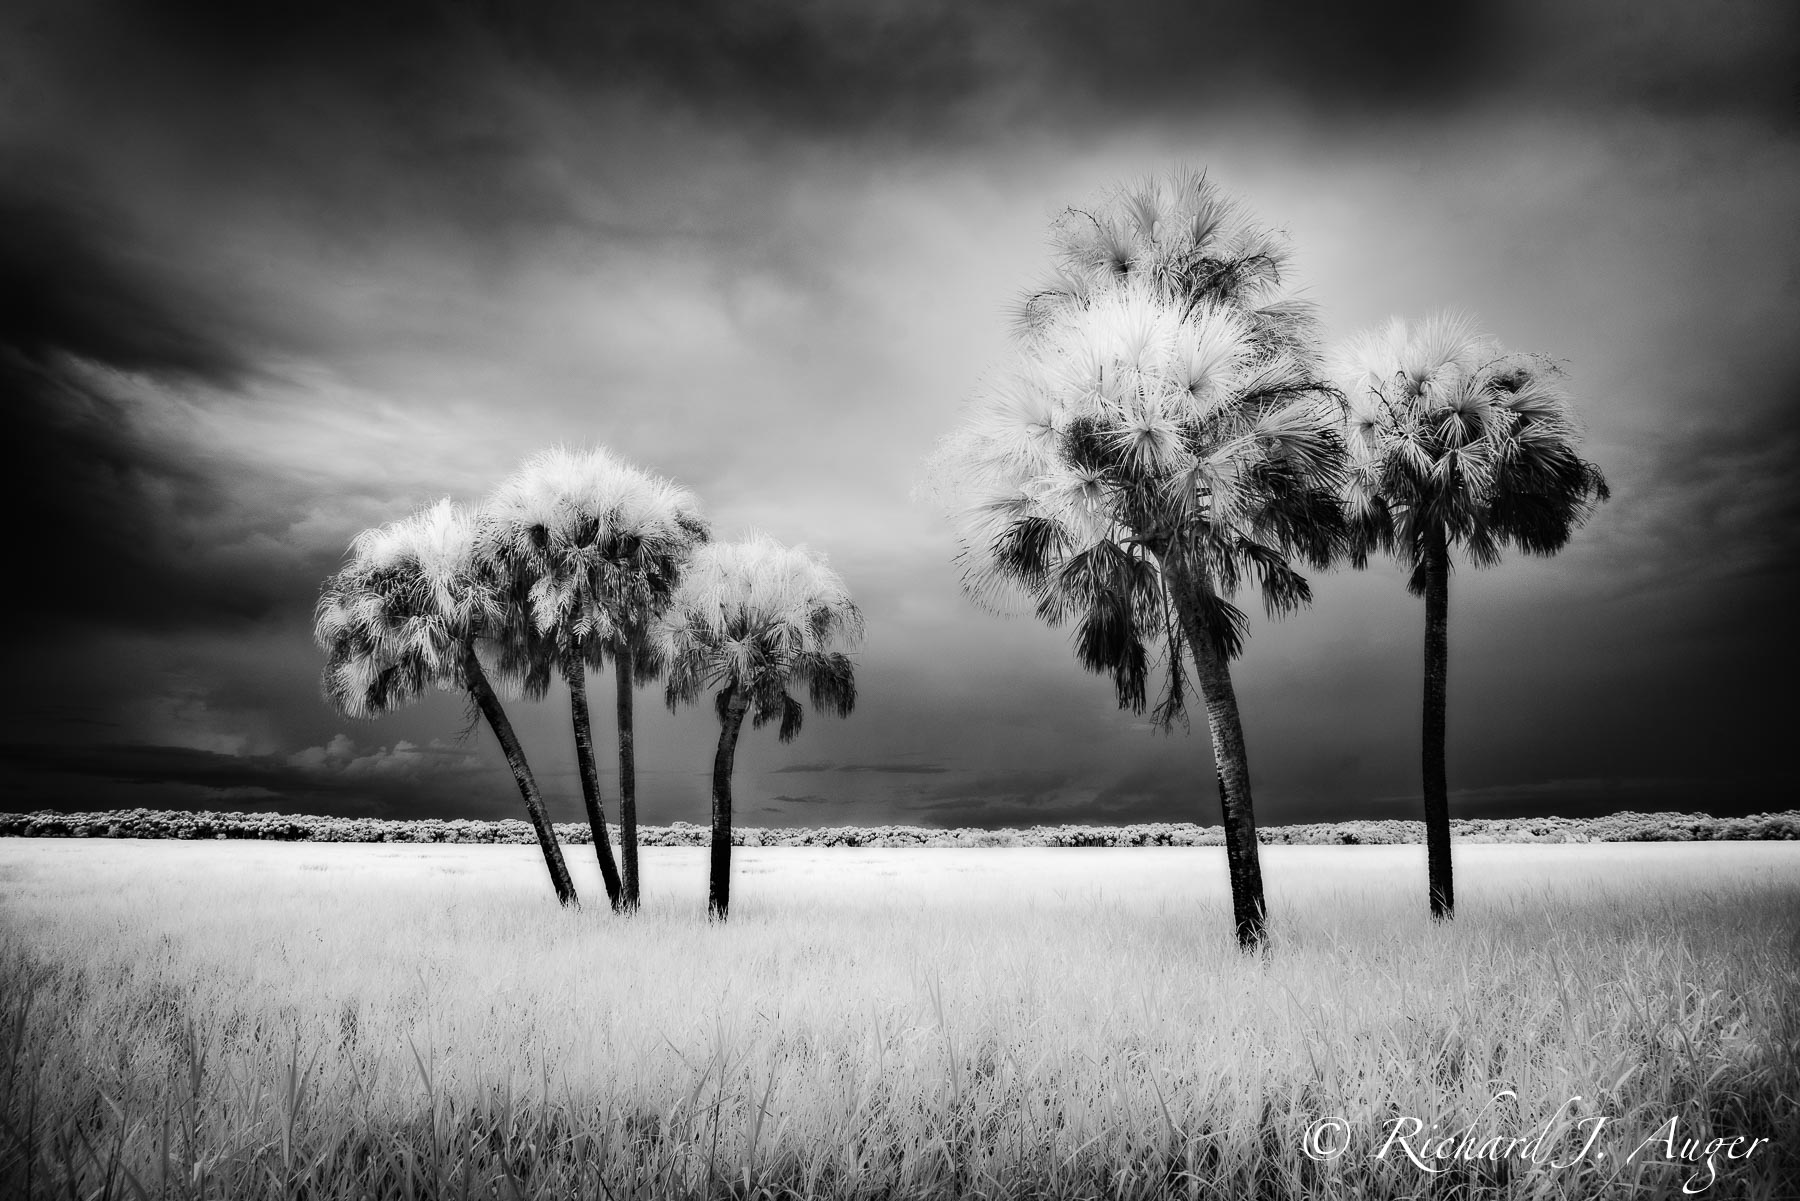 Myakka river state park florida palm trees black and white monorchrome